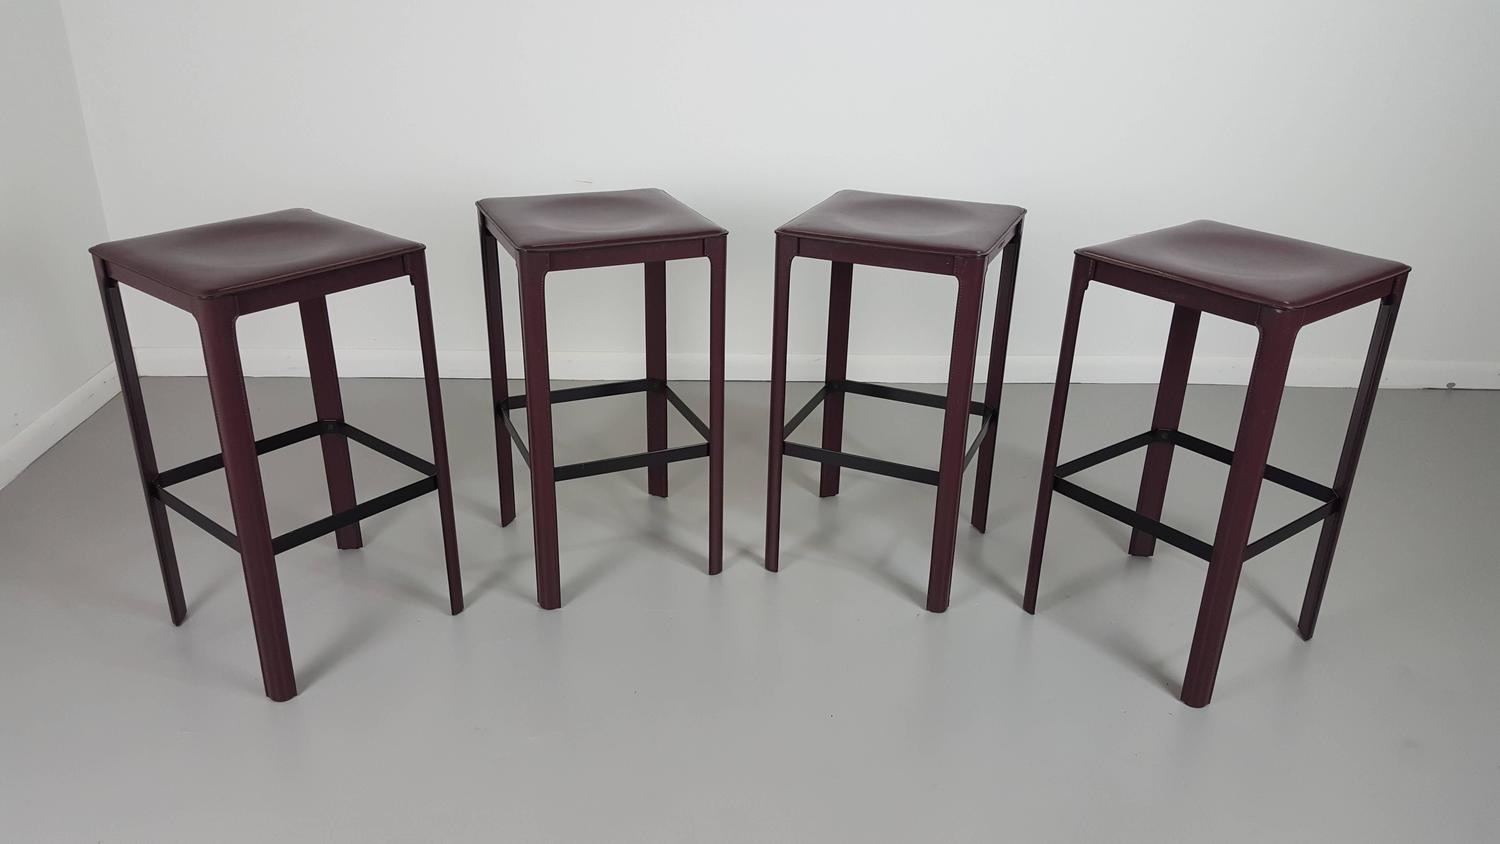 Stately Counter Stools in Heavy Bordeaux Leather by Matteo  : 20151102143506z from 1stdibs.com size 1500 x 844 jpeg 64kB